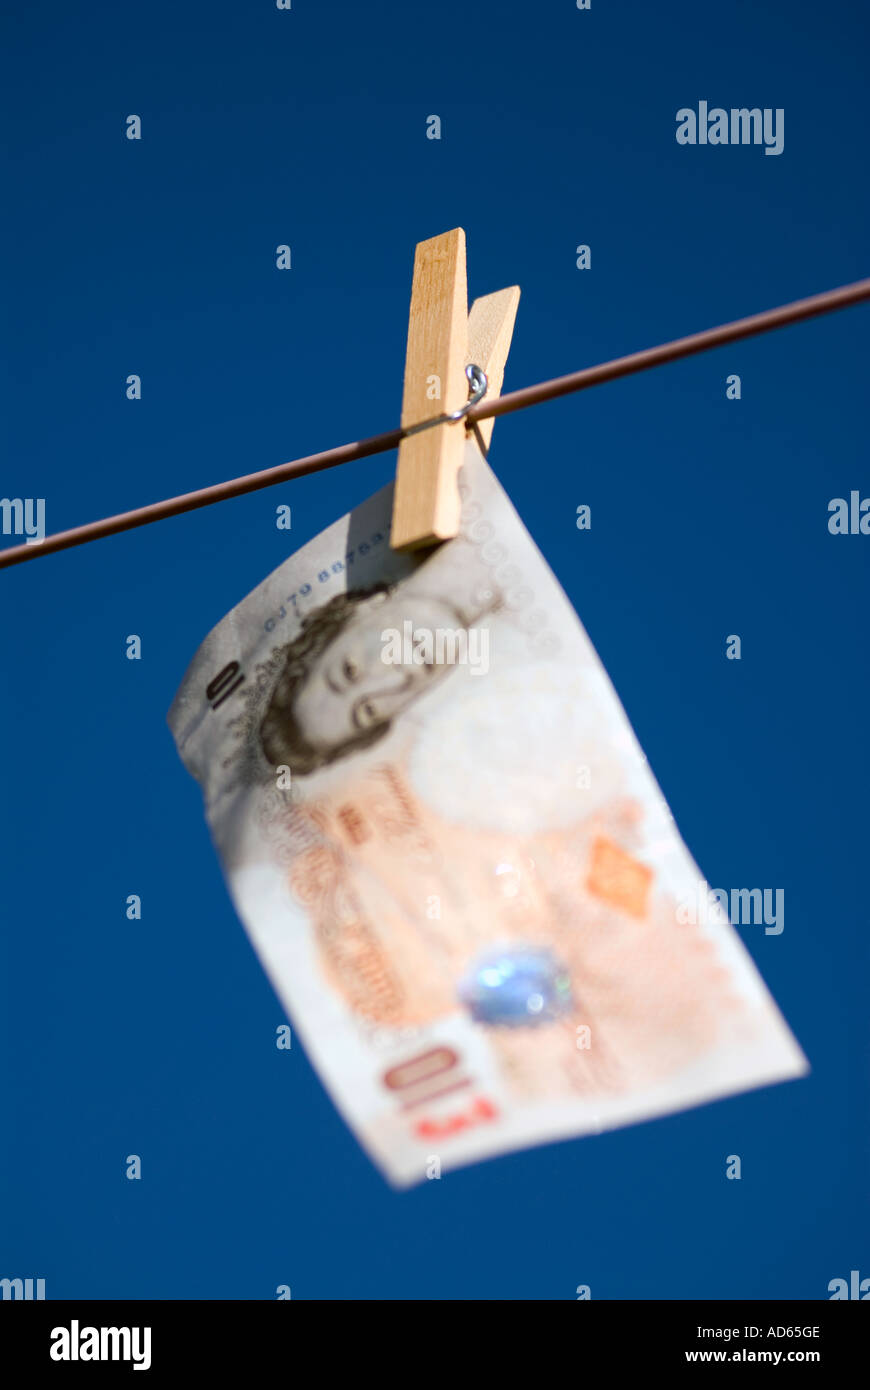 Concept Hanging money out to dry Ten pound note United Kingdon of Great Britain The peg is in focus The bank note Stock Photo